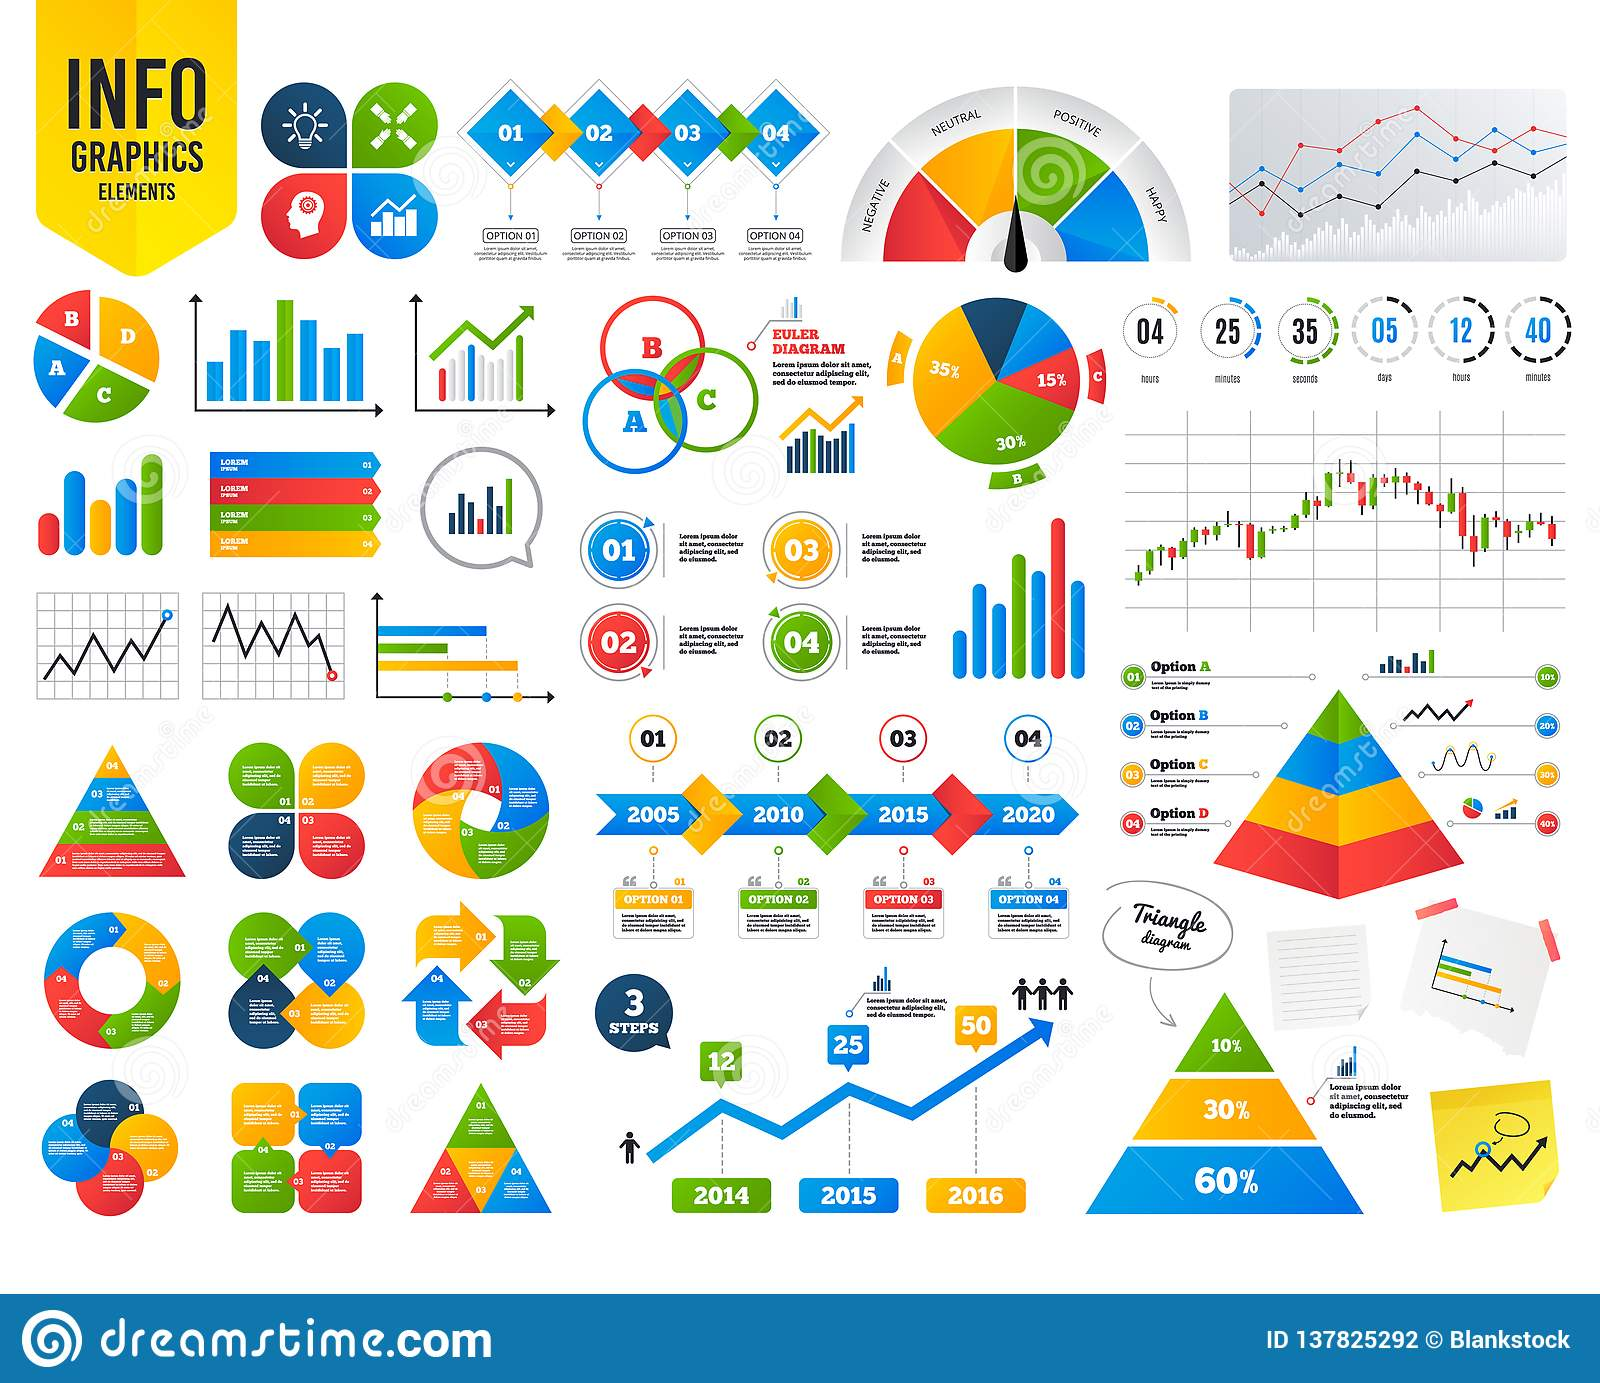 hight resolution of business infographic template lamp idea and head with gear icons graph chart diagram sign teamwork symbol financial chart time counter vector